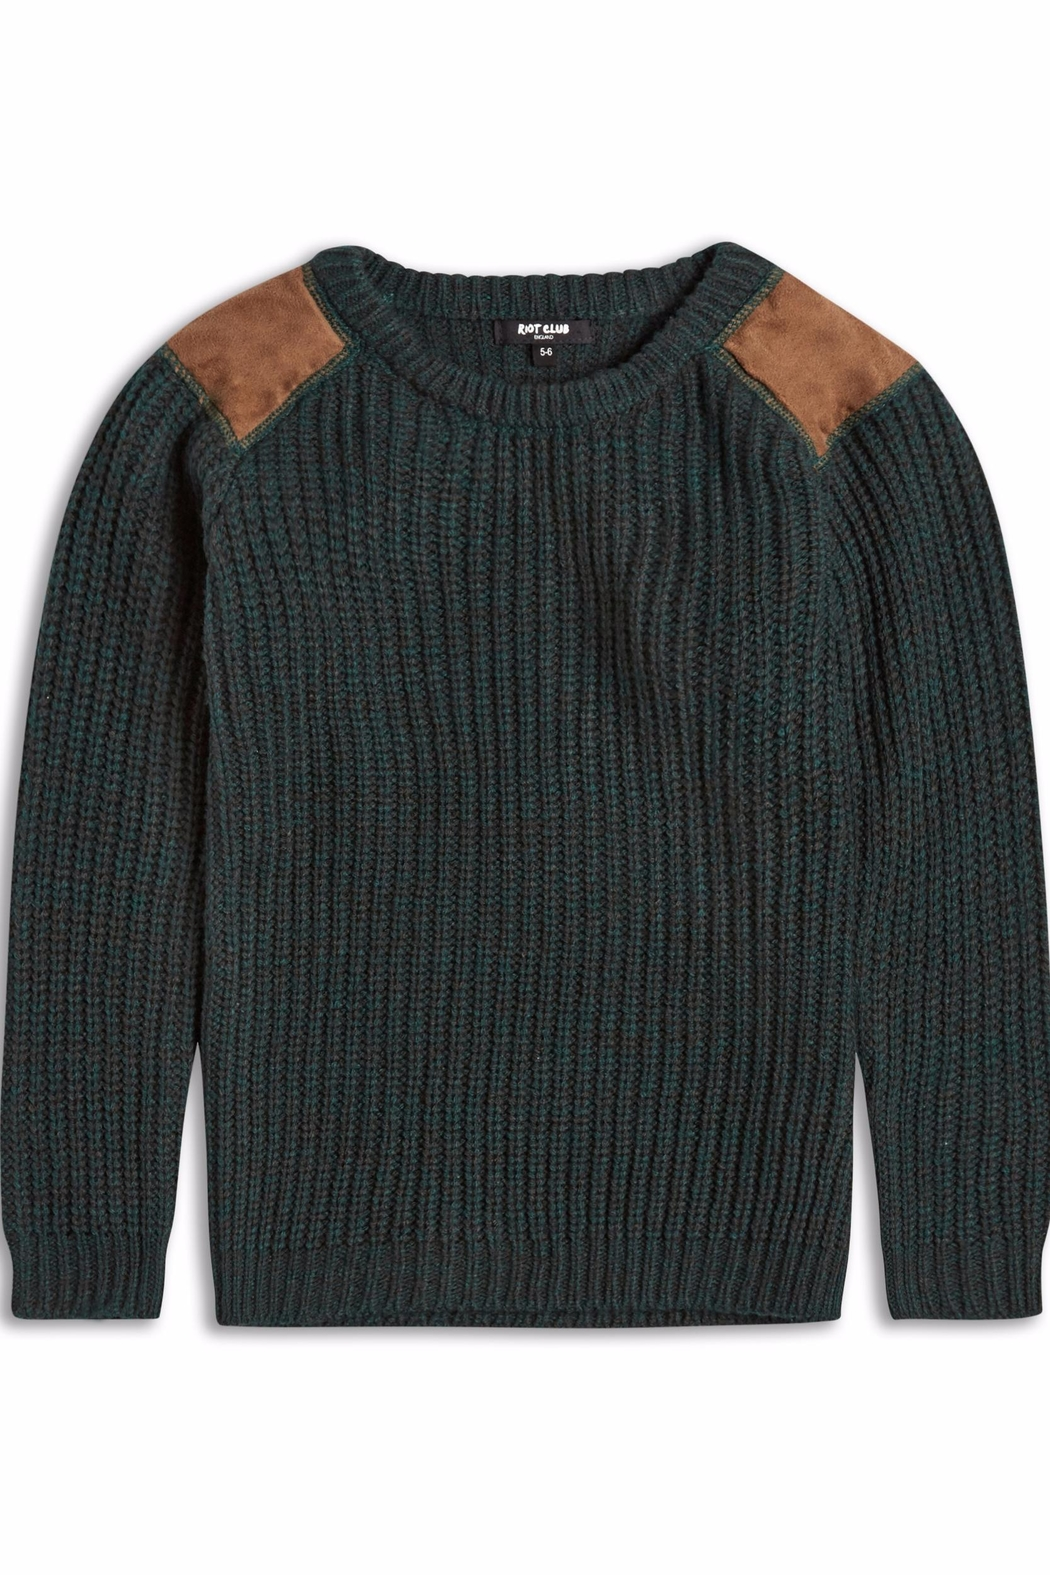 Riot Club Dark Green Sweater - Main Image